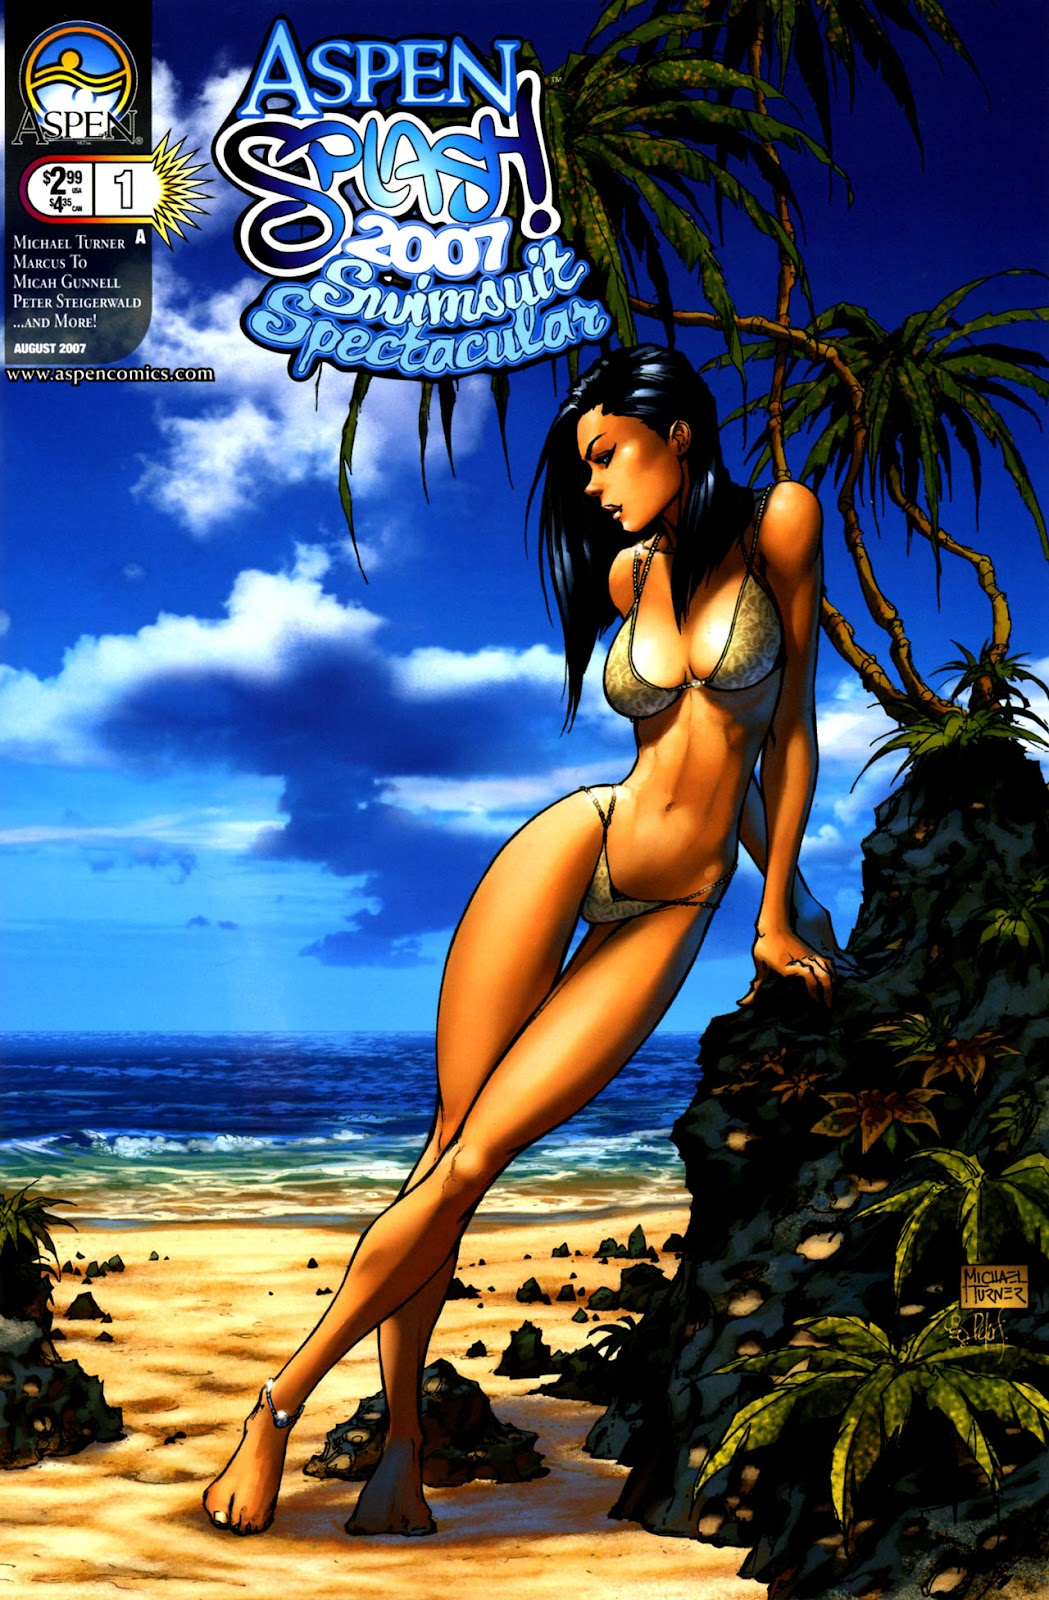 Read online Aspen Splash: Swimsuit Spectacular comic -  Issue # Issue 2007 - 1